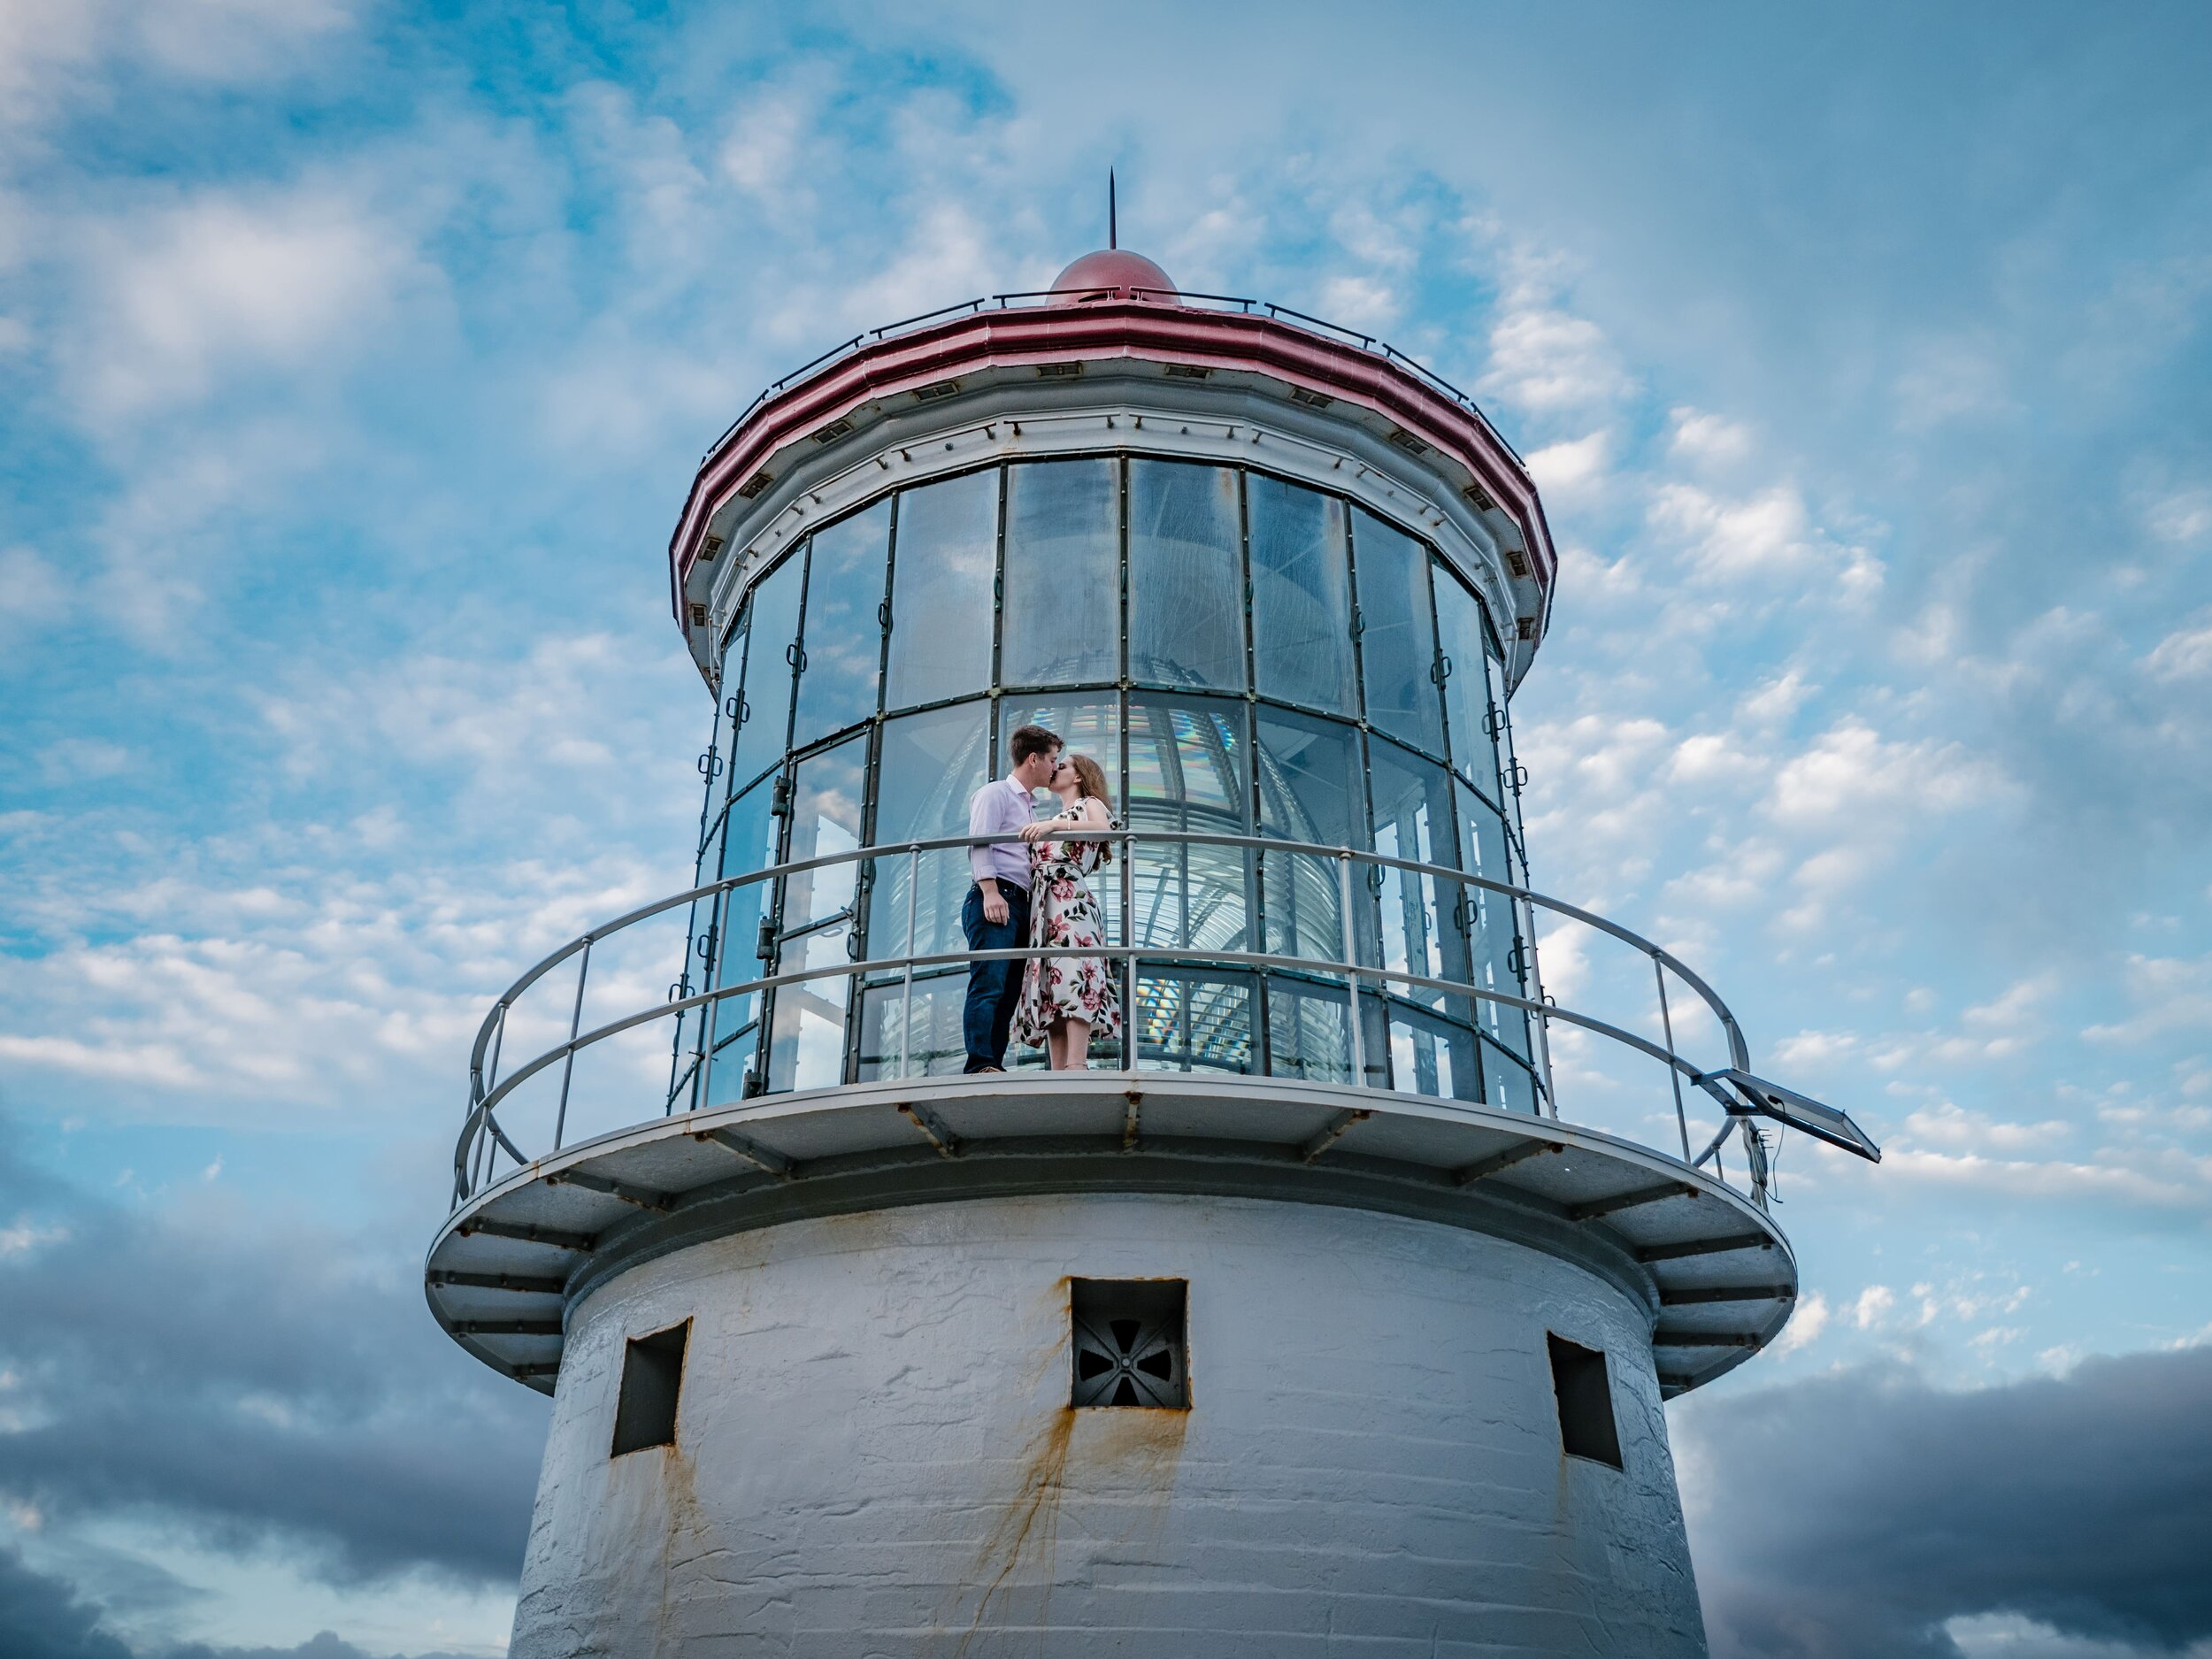 engagement sessions and wedding ceremony and receptopn photographers Honolulu oahu hawaii.jpg